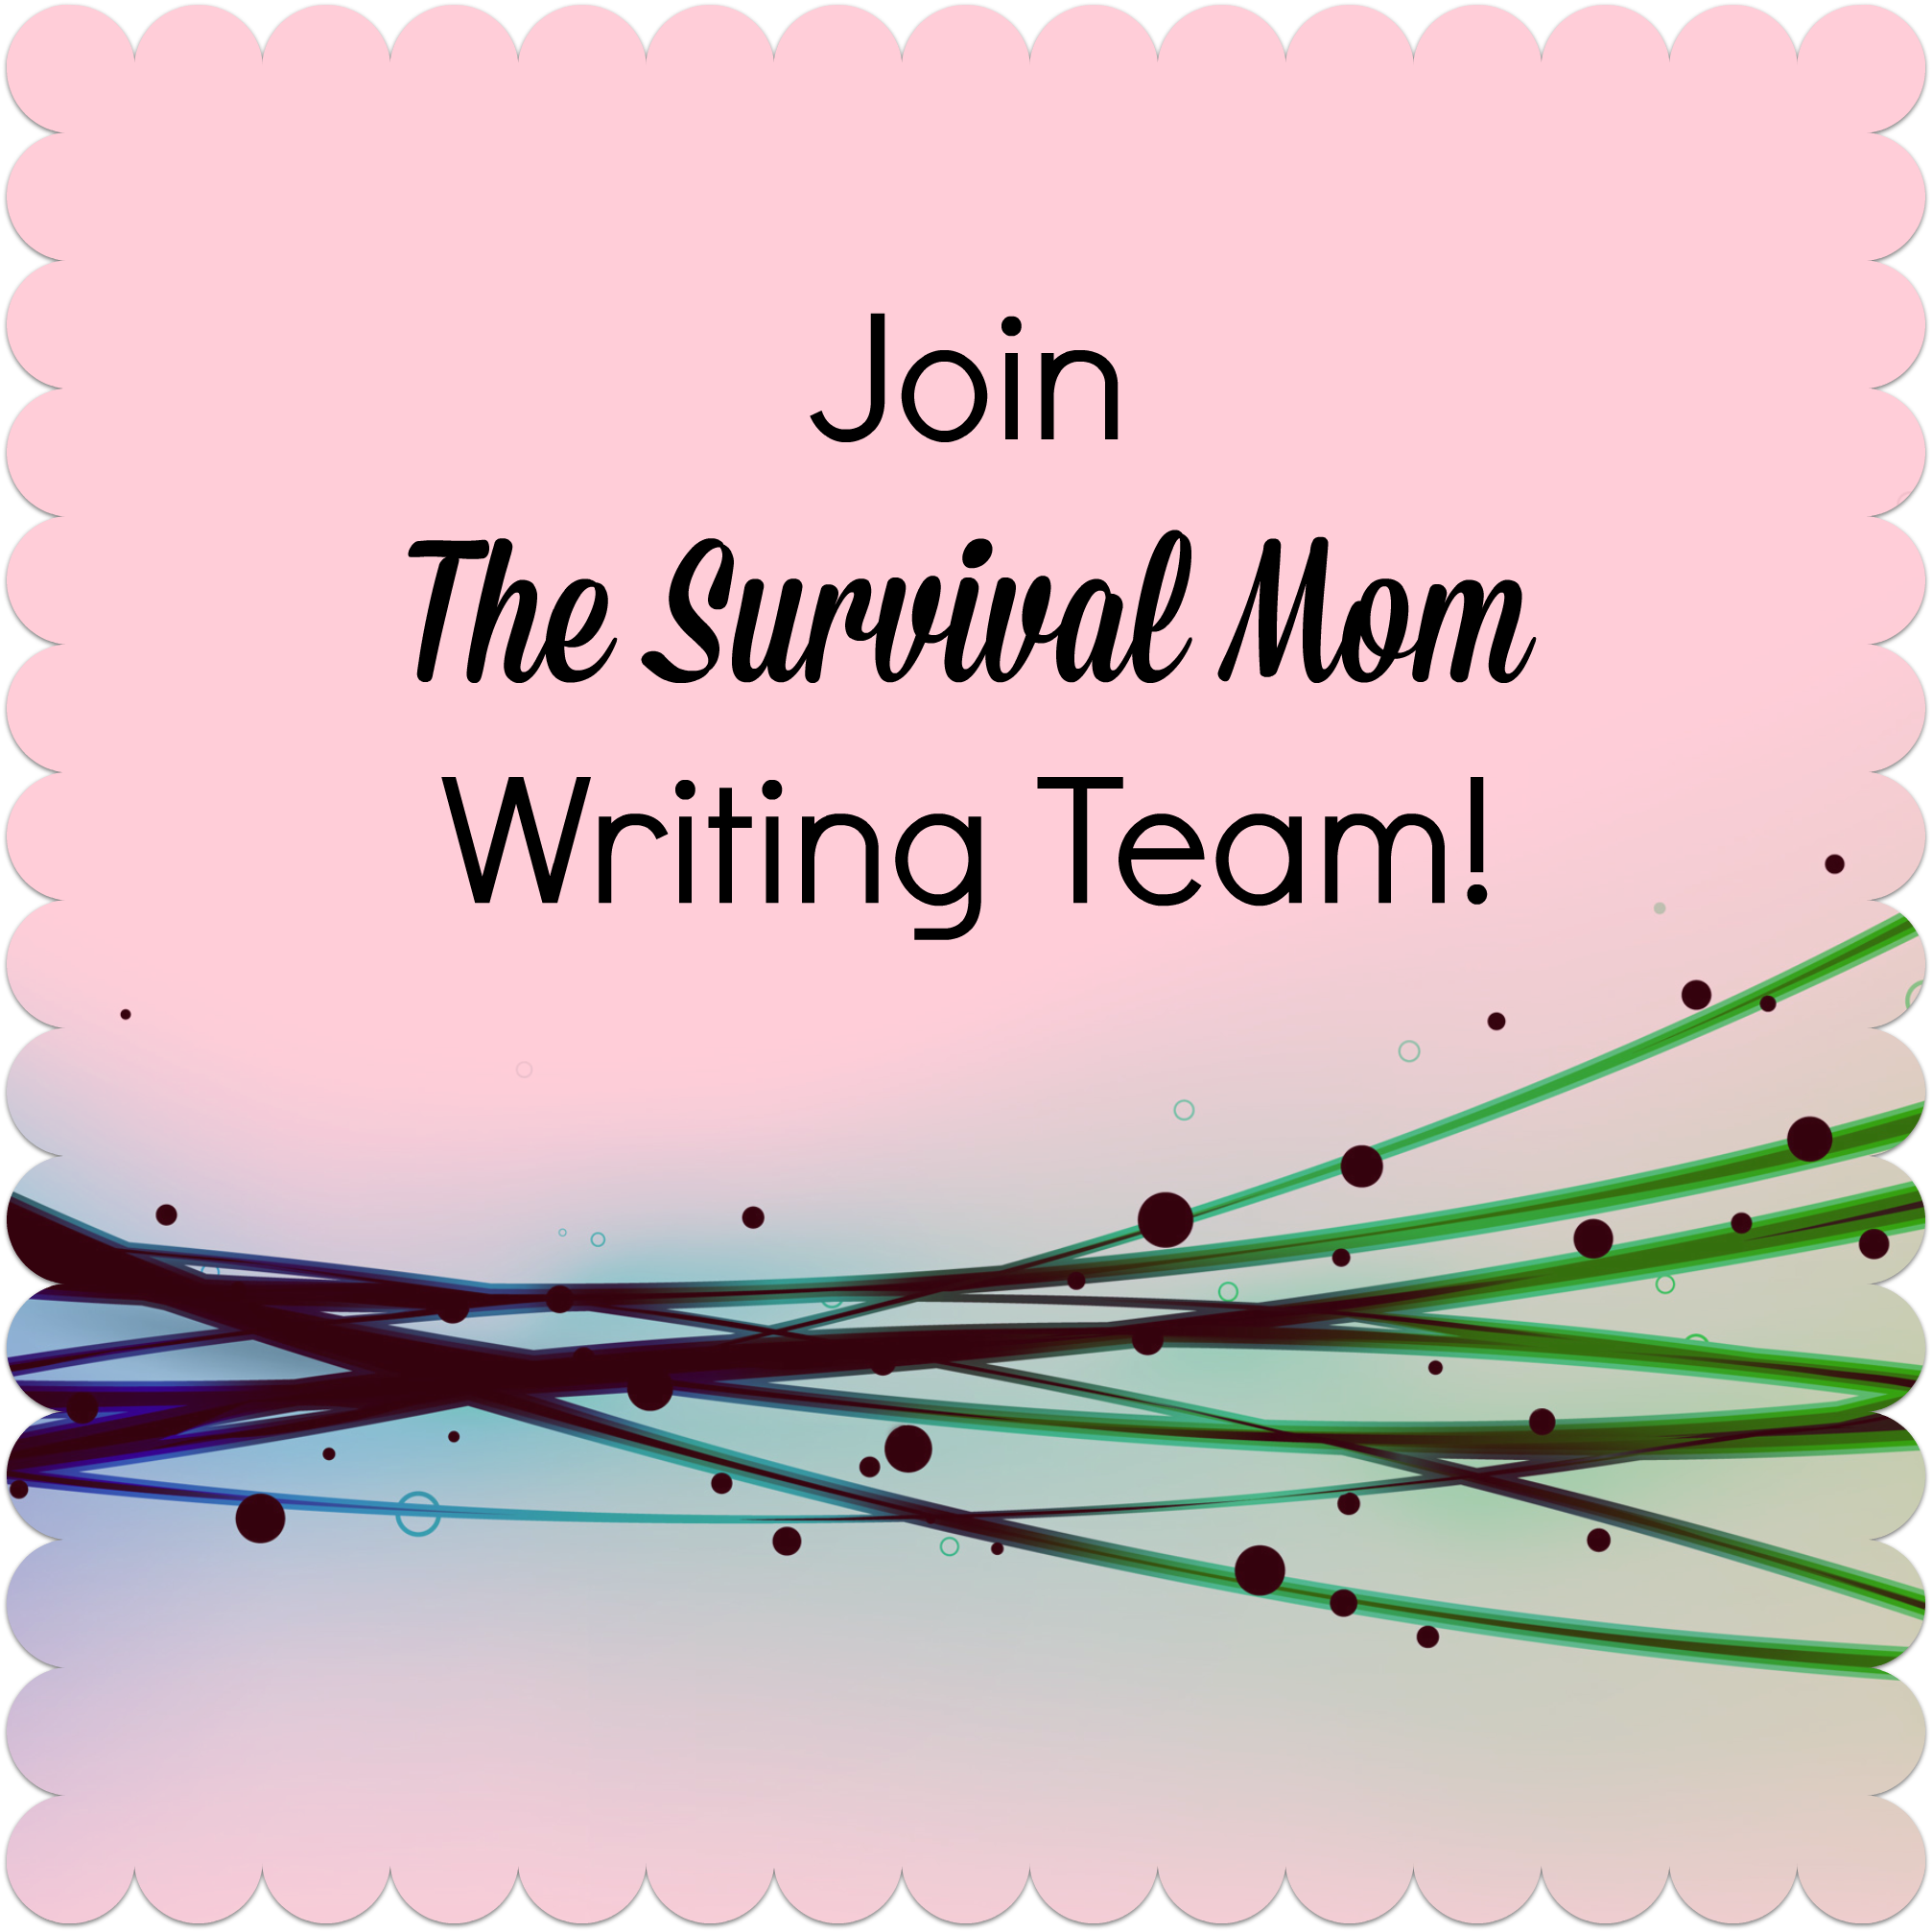 Help Wanted! Join our team of writers